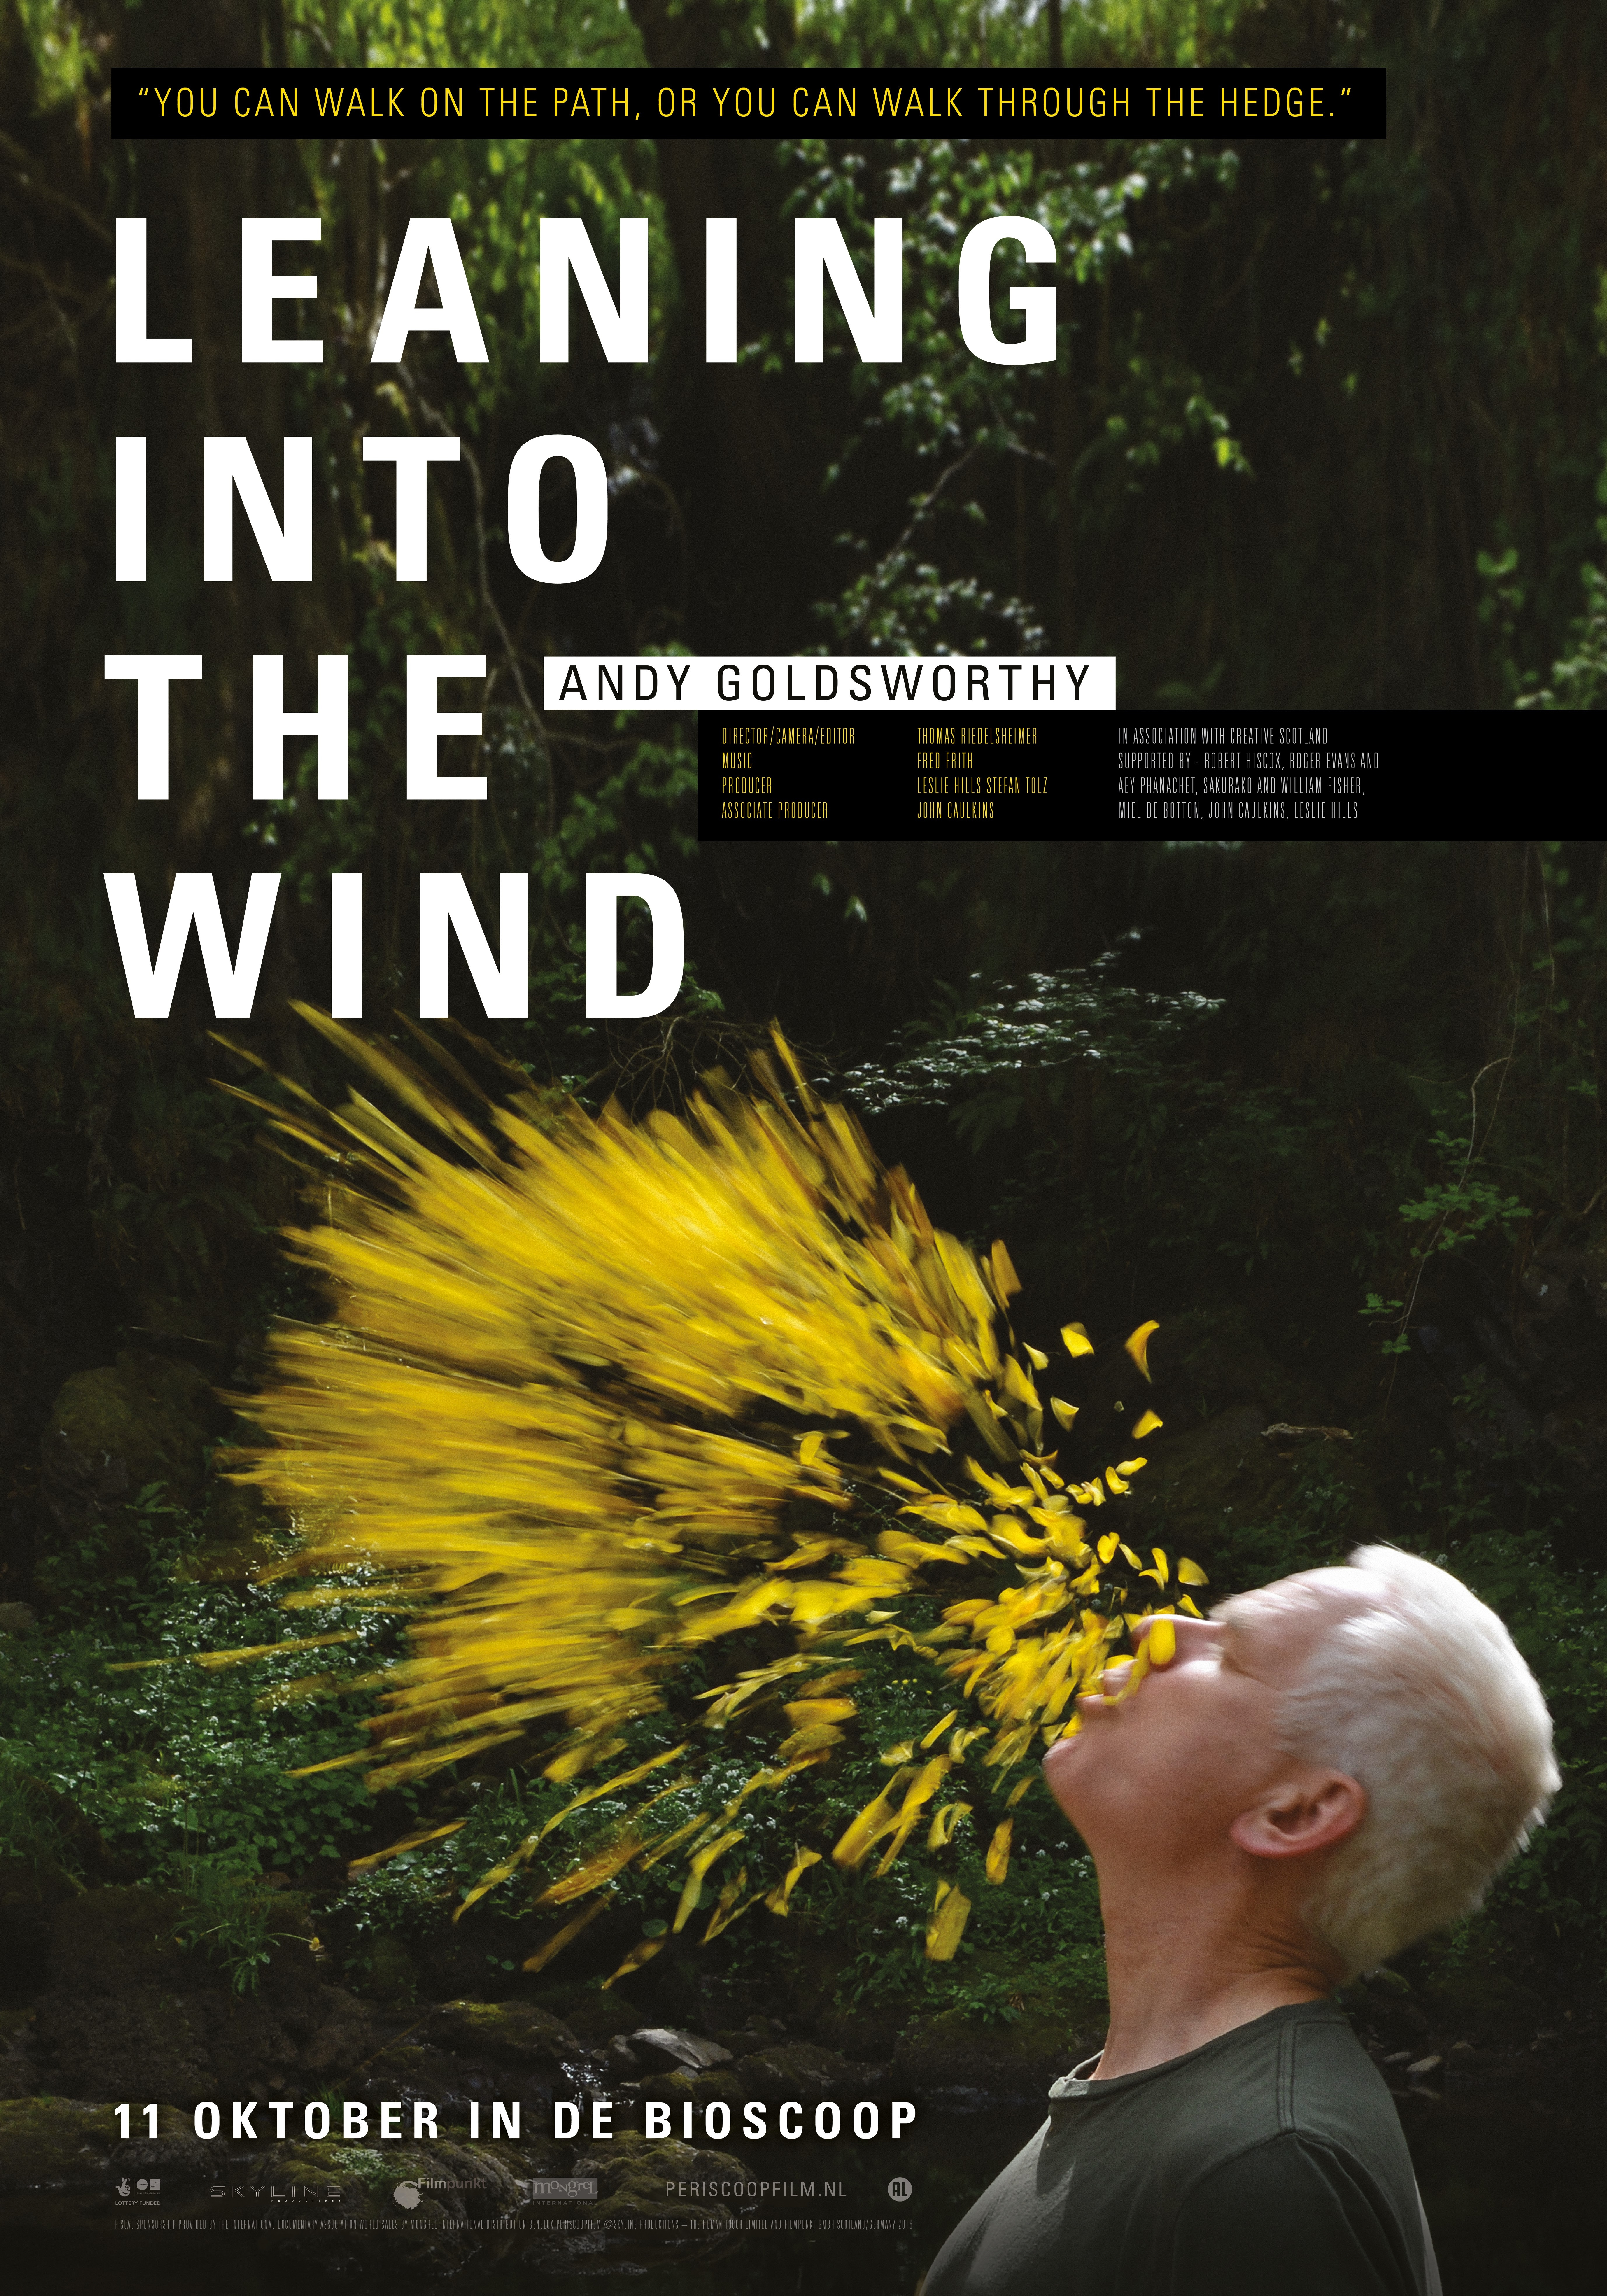 Leaning Into the Wind: Andy Goldsworthy poster, © 2017 Periscoop